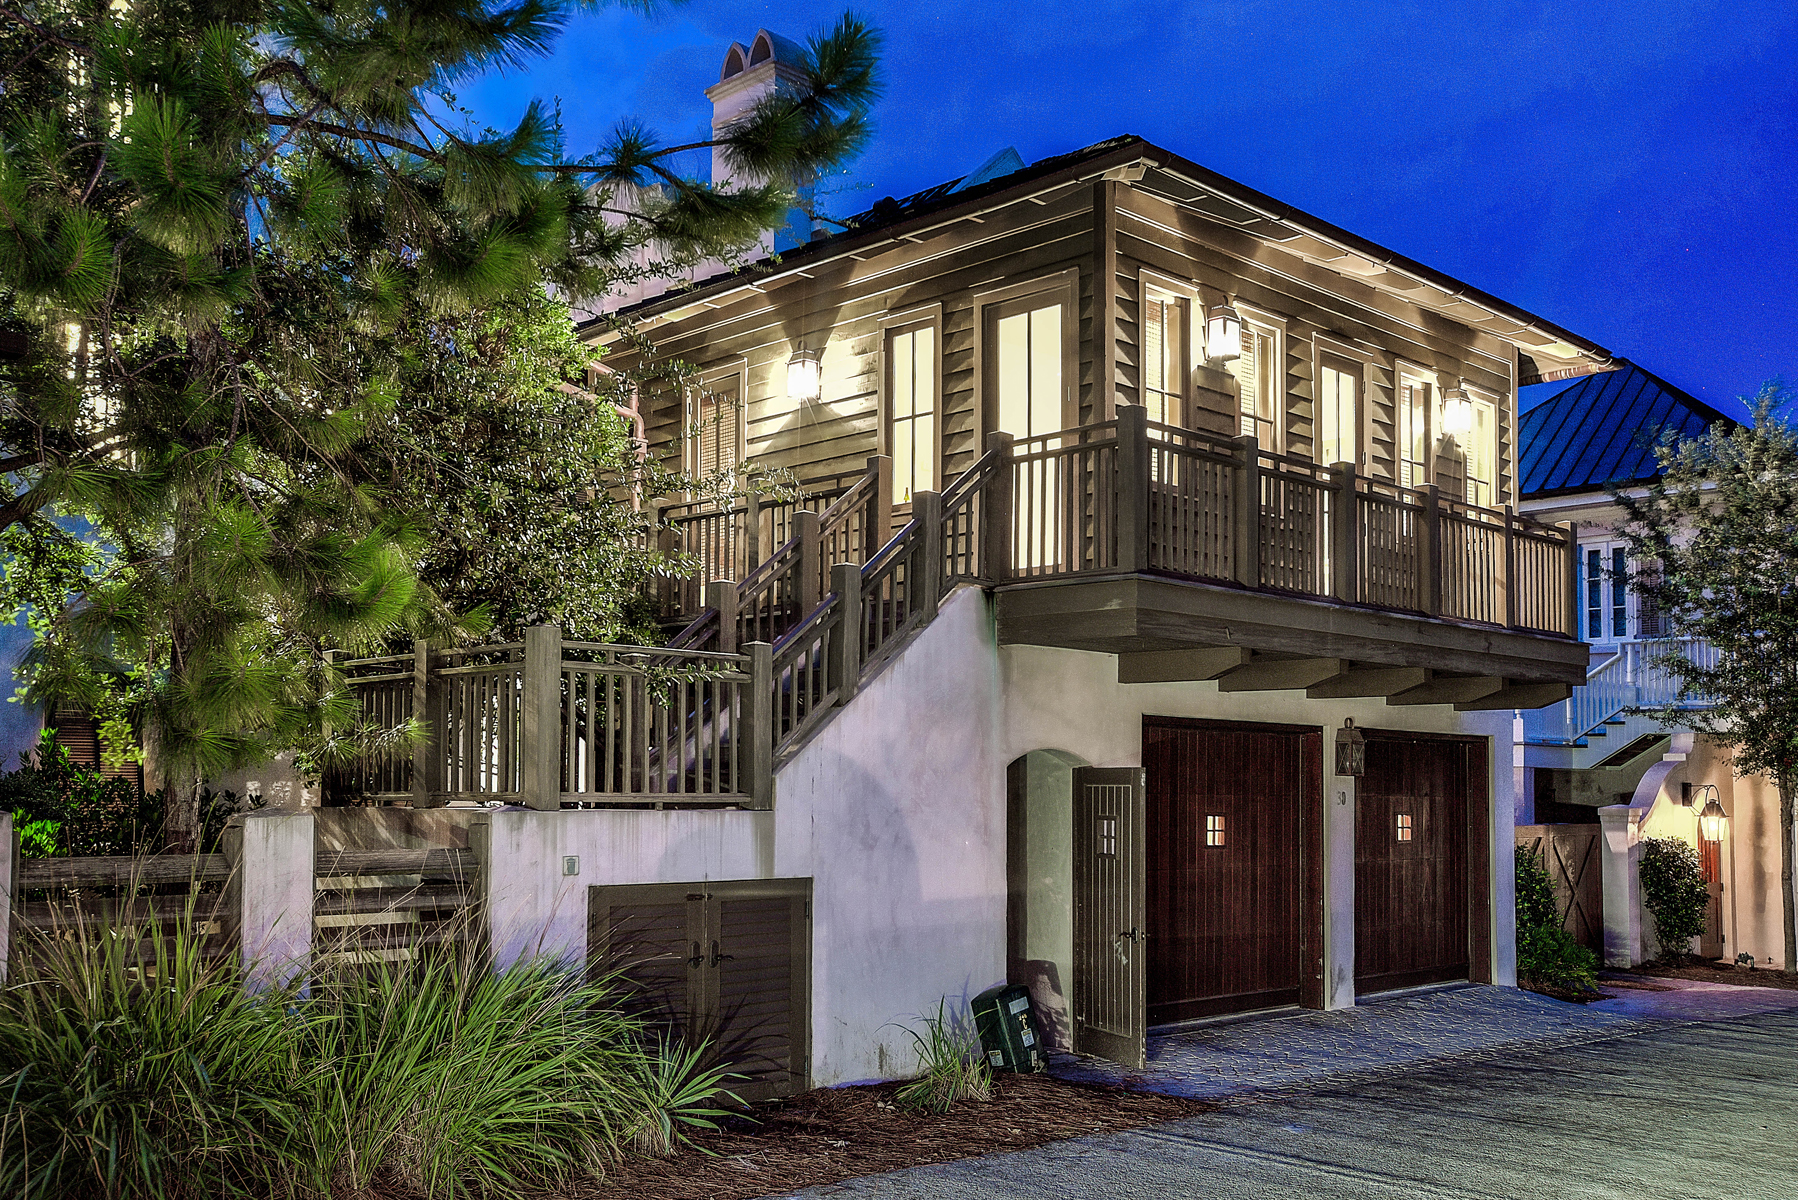 Single Family Home for Sale at LUXURIOUS GULF VIEW ROSEMARY HOME EFFORTLESSLY HOSTS GUESTS 30 Spanish Town Lane Rosemary Beach, Rosemary Beach, Florida, 32461 United States